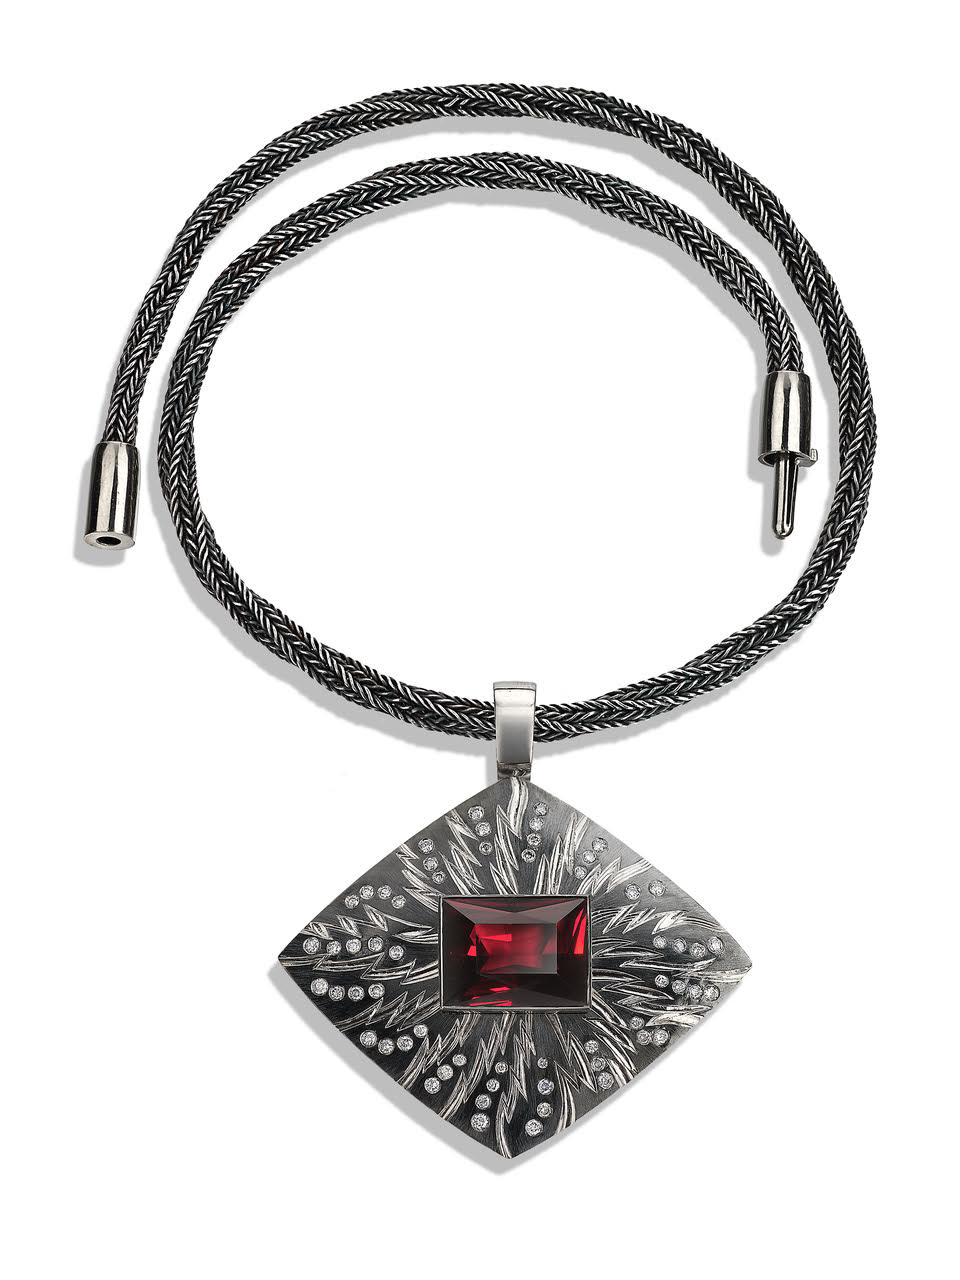 "<a href=""/node/277"">""PORTAL"" Pendent; 18ct white gold, hand engraved and carved, Set with 58 grey diamonds / rectangular Garnet 18.77cts. Part coloured in Black Rhodium. Hand knitted "" Sacred Knot"" chain in fine silver oxidised black' White Gold clasp / can be worn separatel</a>"